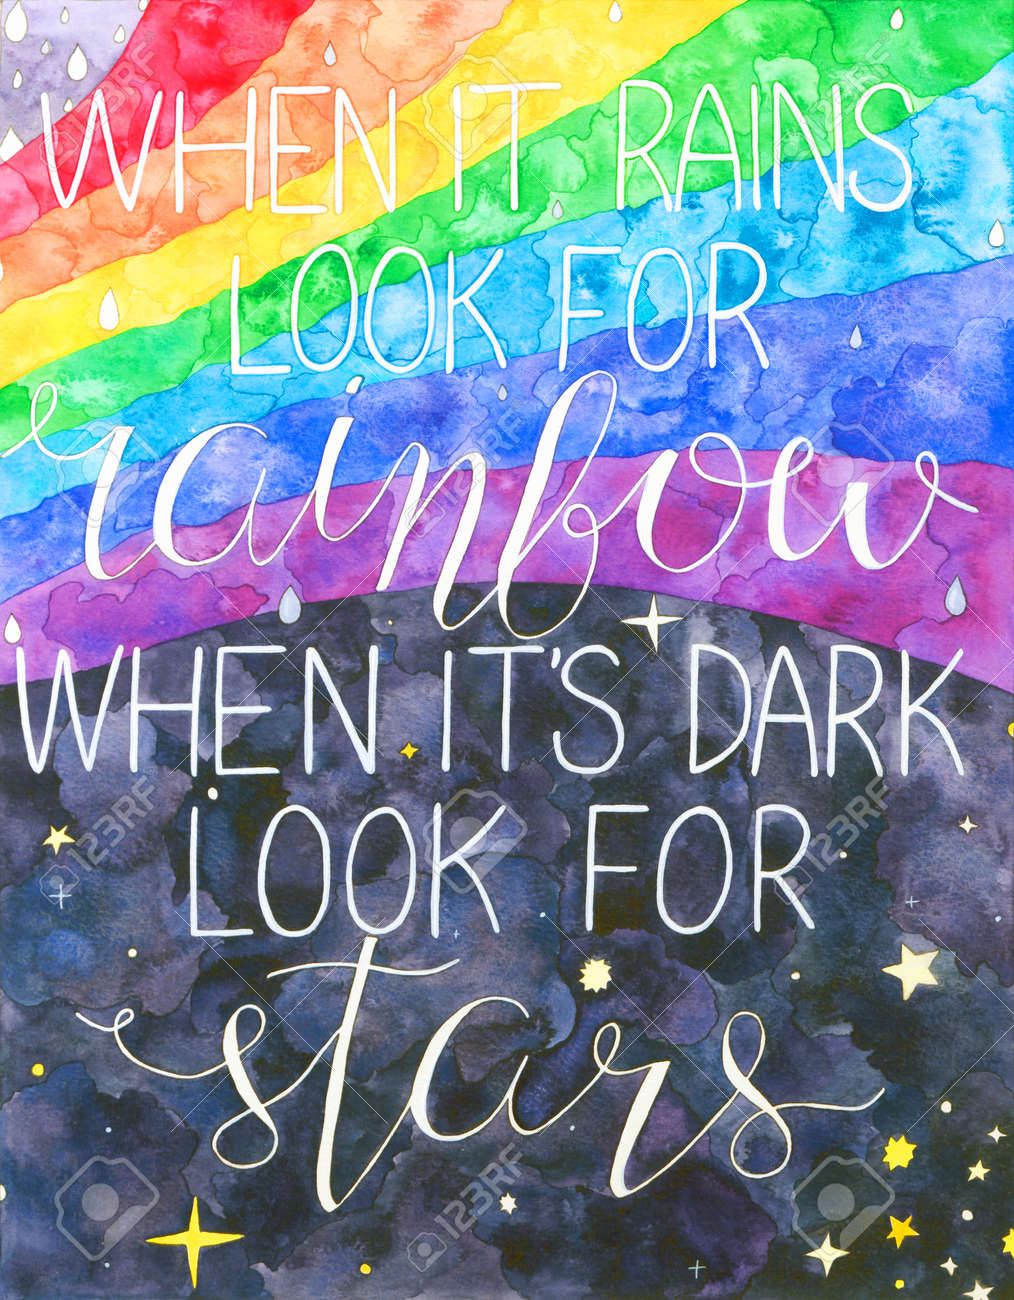 When It Rains Look For Rainbow When It's Dark Look For Stars